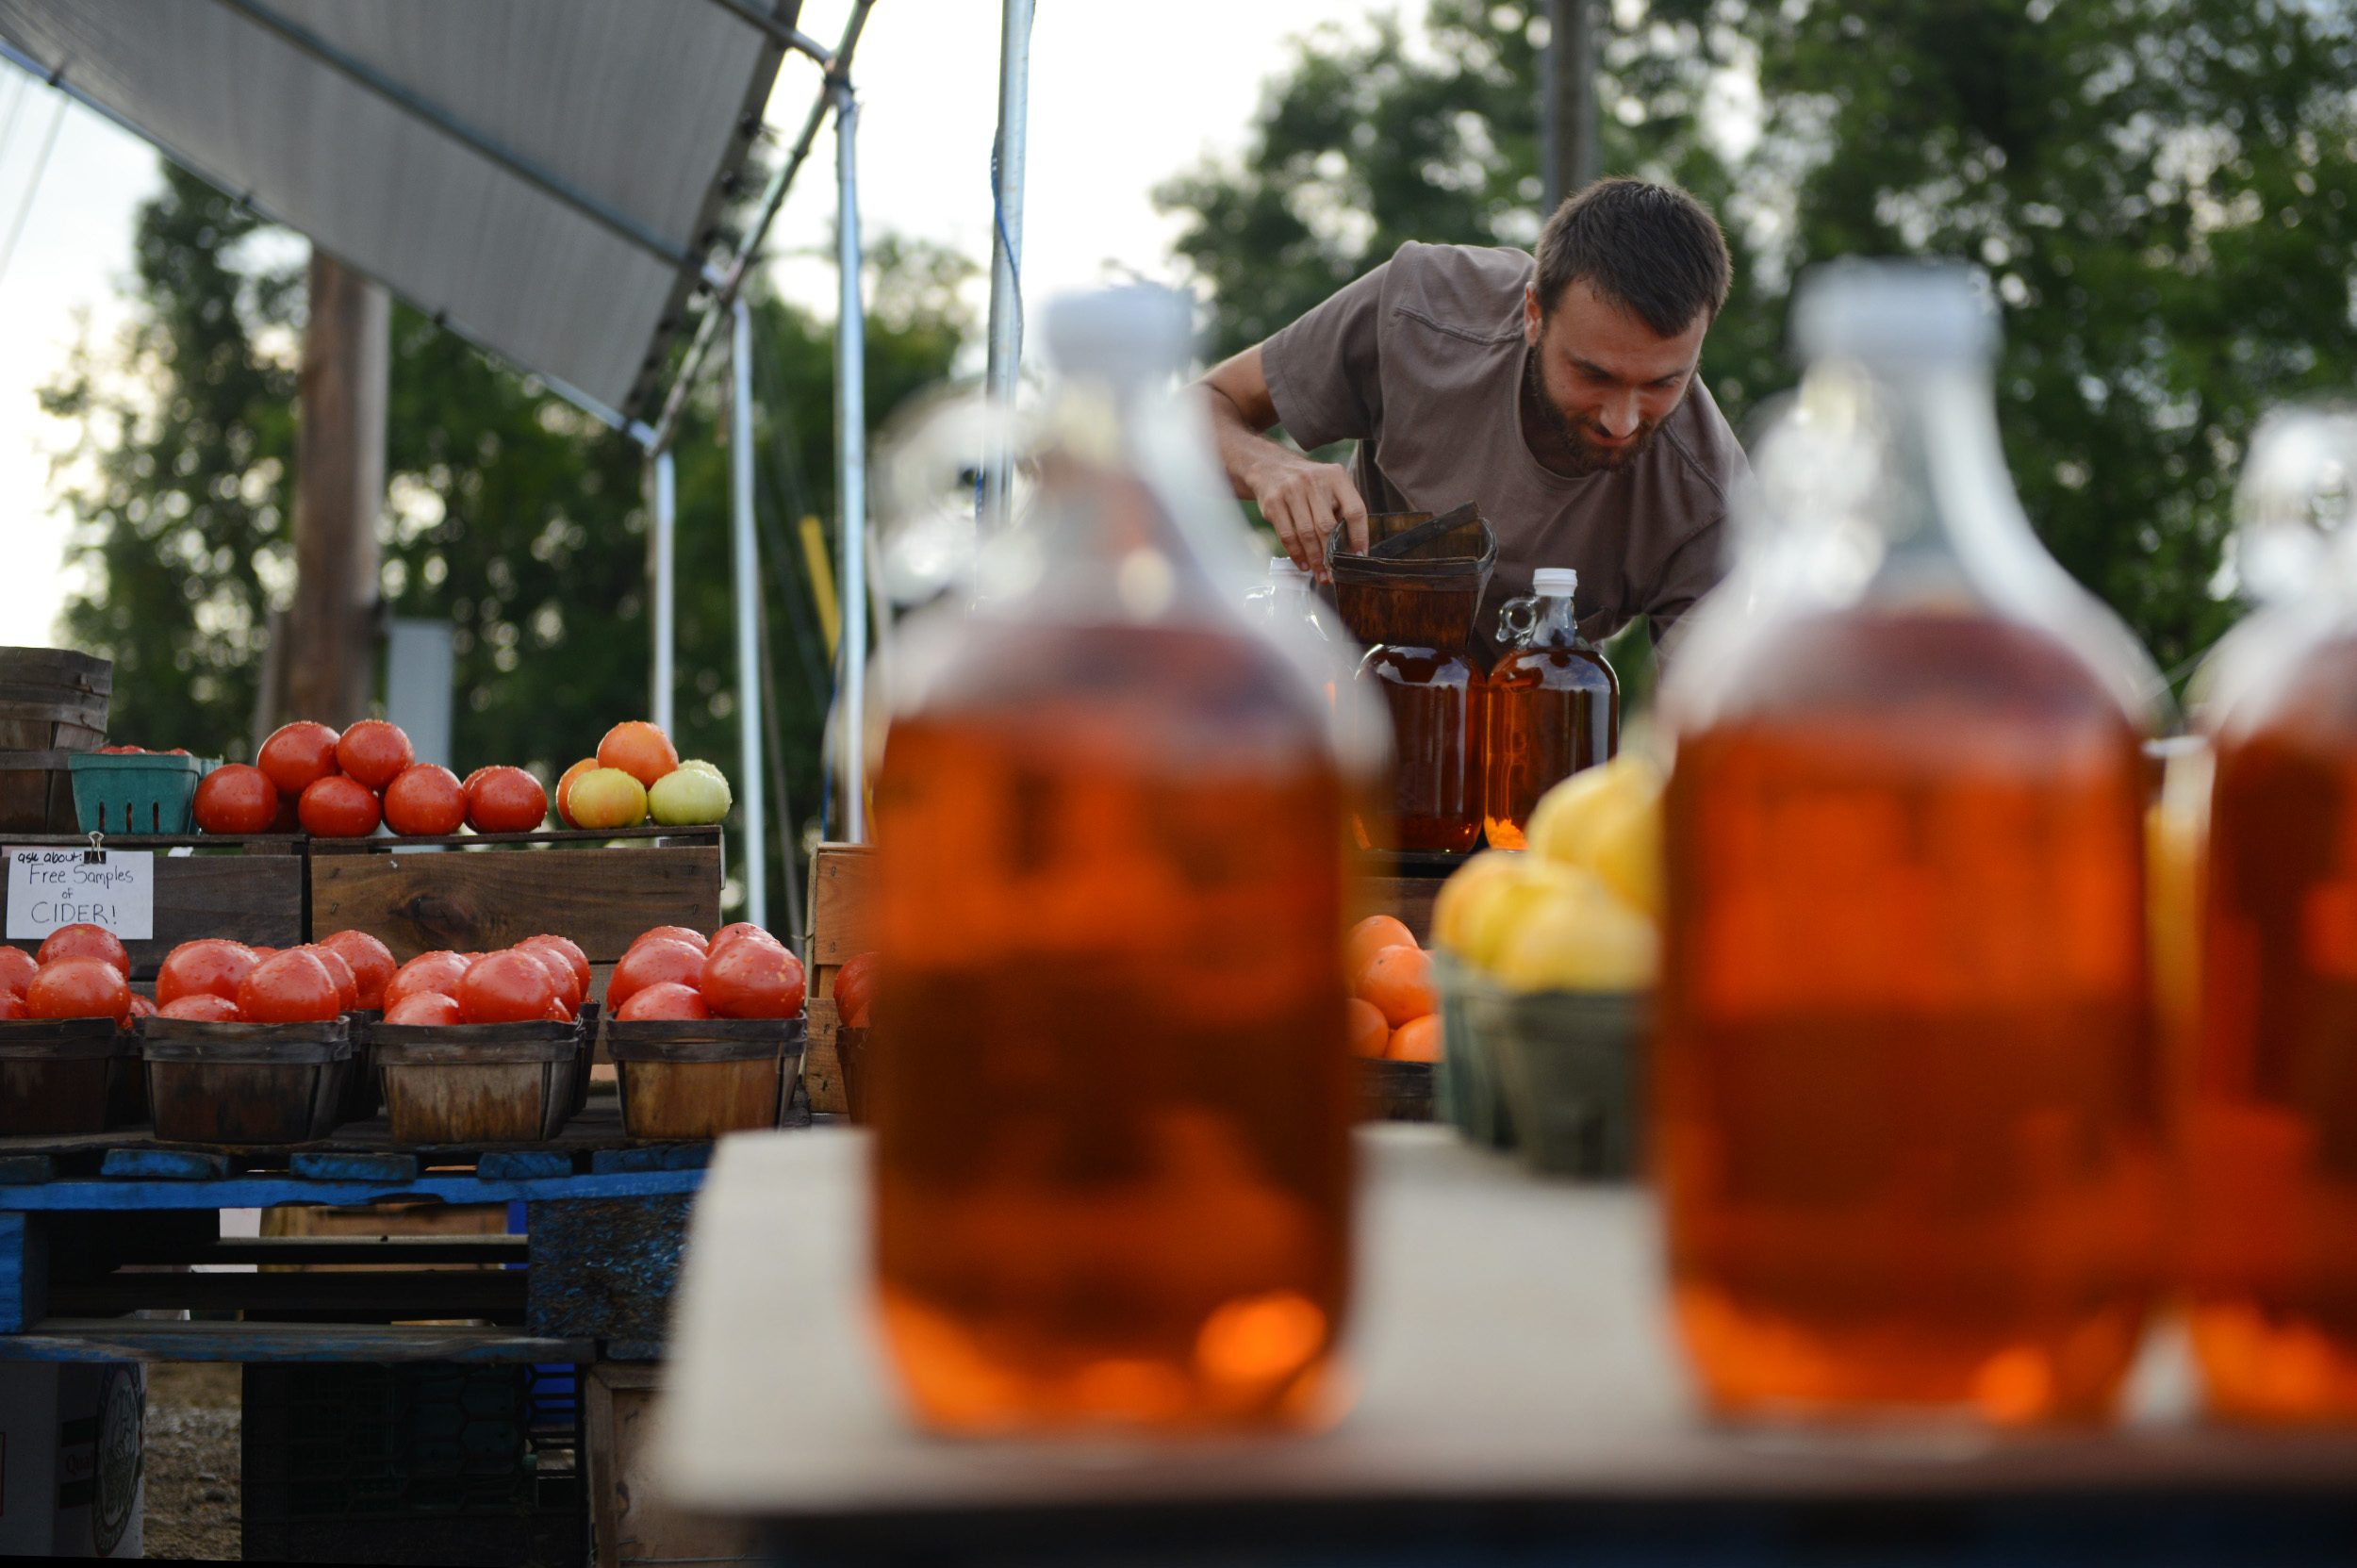 Jaymes Peluso-Hoffman, of Bloomfield, is framed between jugs of cider as he arranges tomatoes at the Golden Apple produce stand in Buffalo Township on Tuesday, Aug. 18, 2015. The produce stand will be open through the fall season.